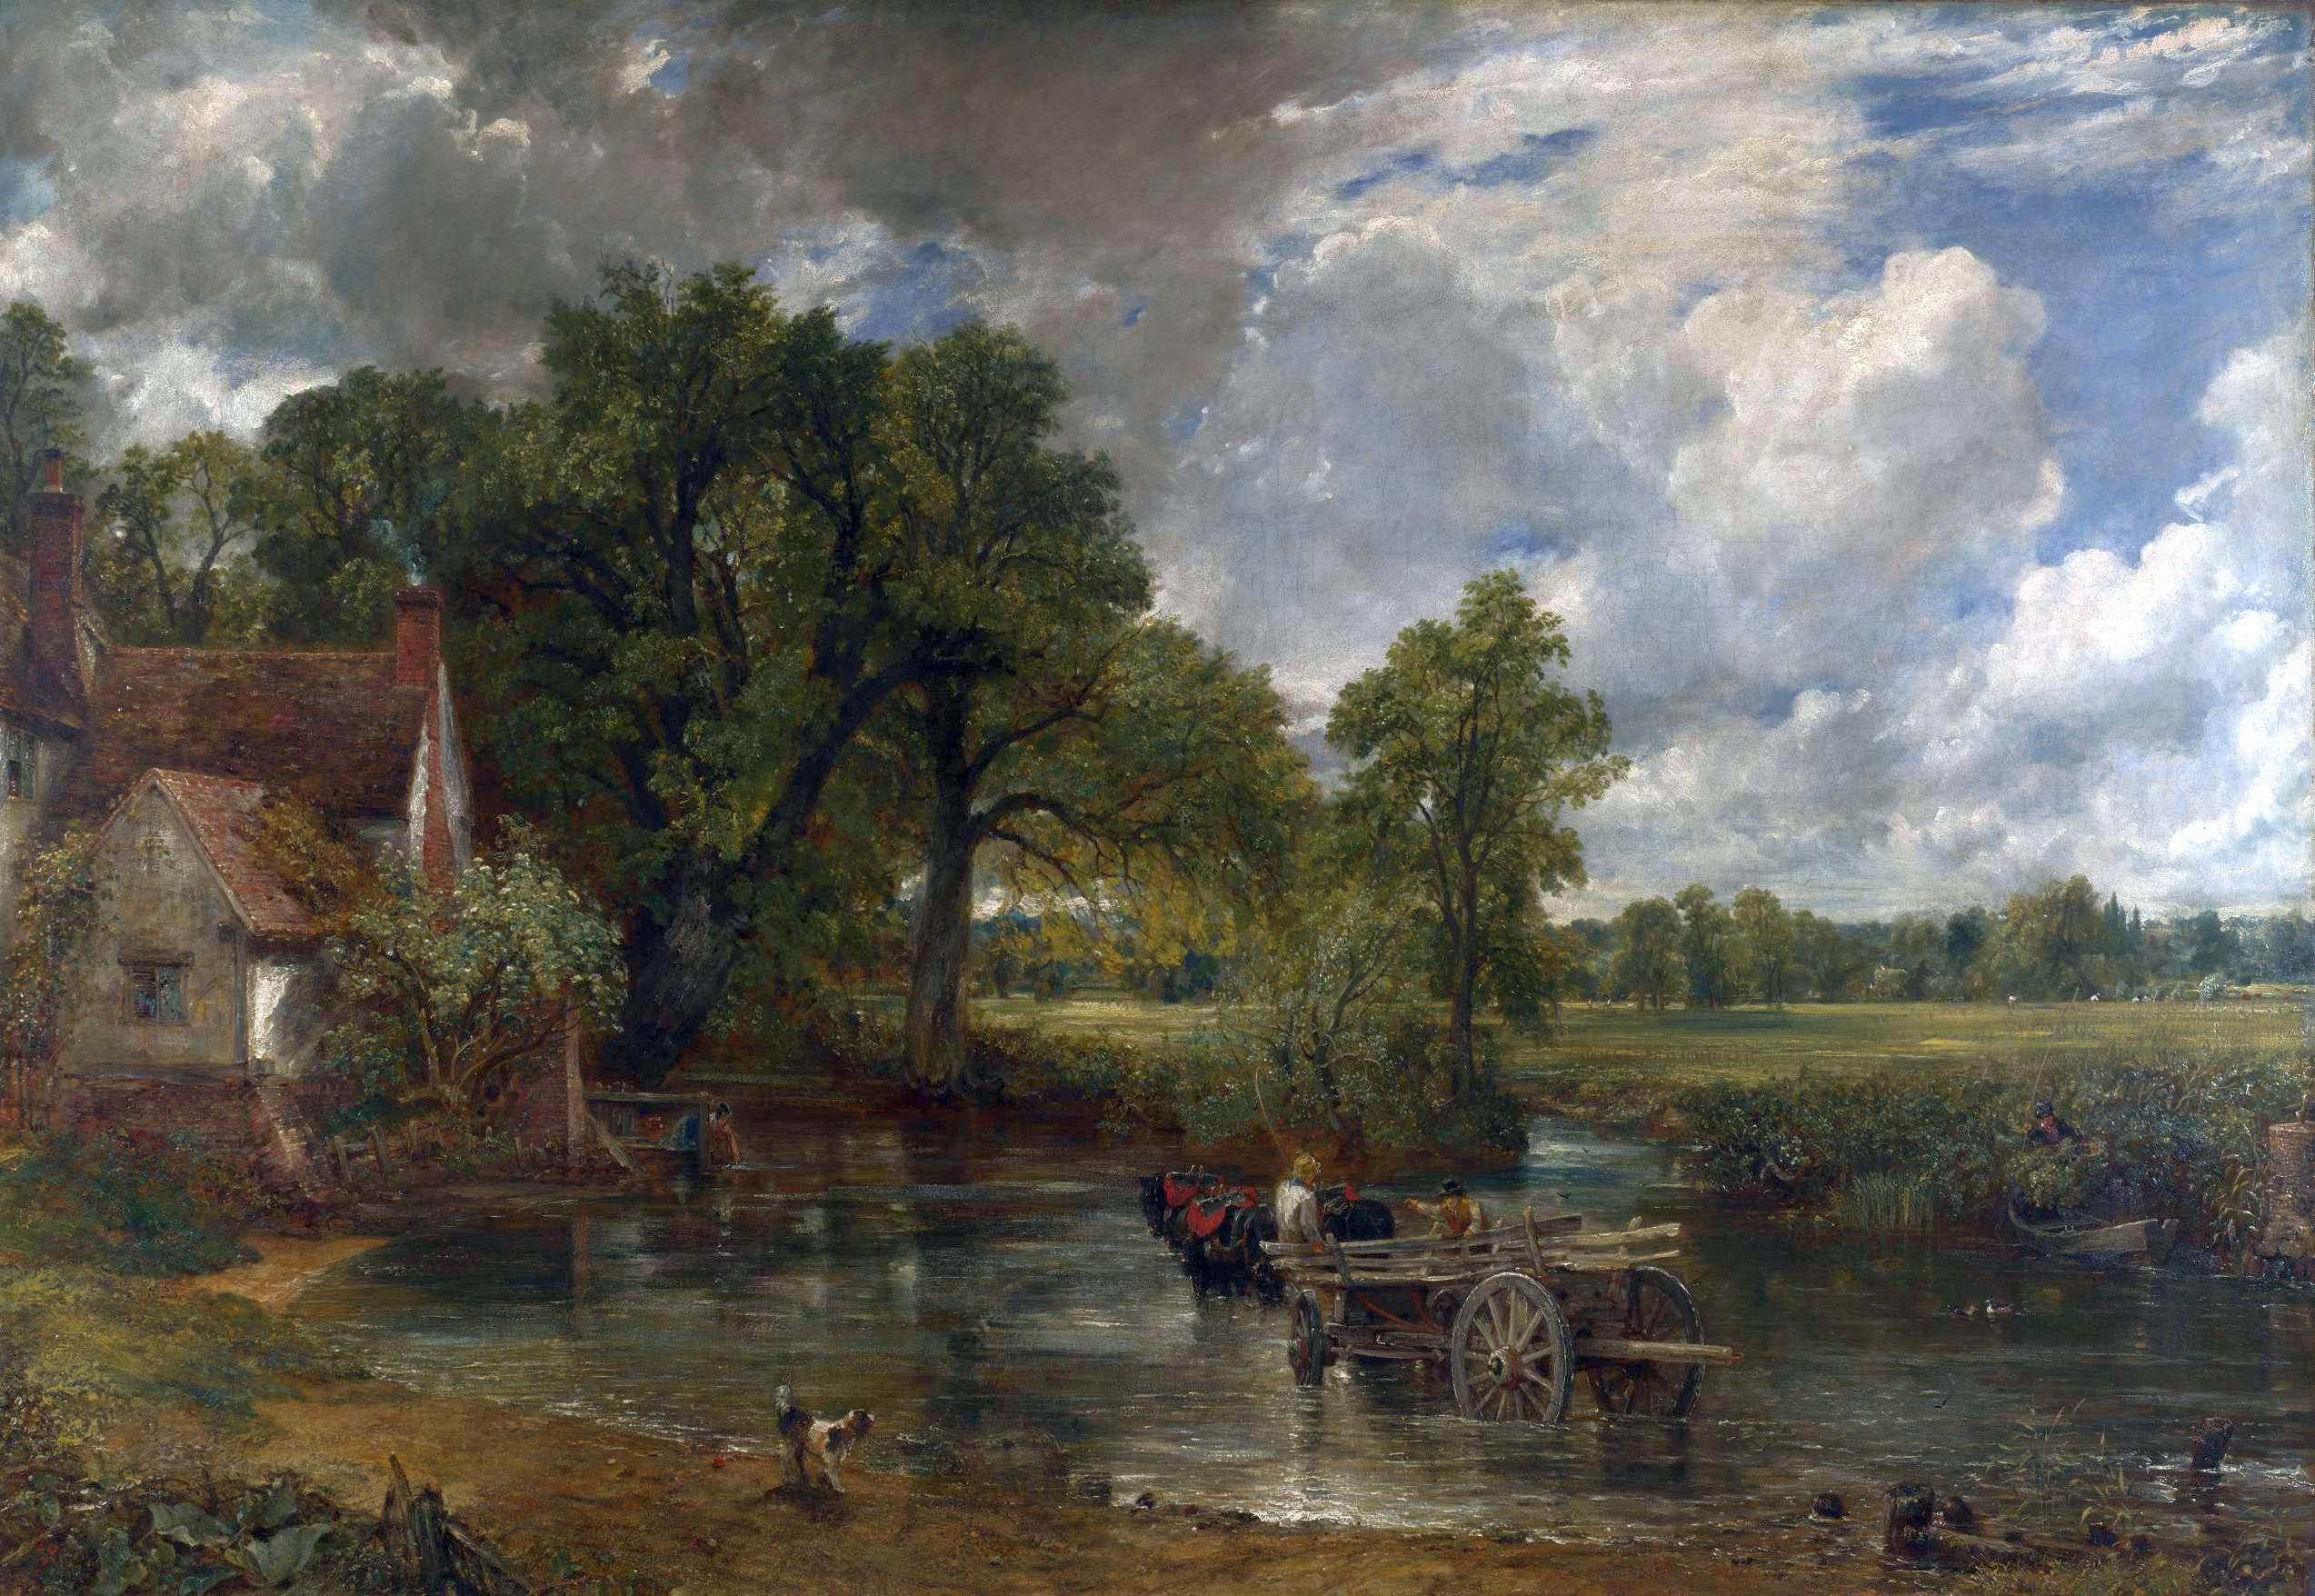 http://upload.wikimedia.org/wikipedia/commons/d/d9/John_Constable_The_Hay_Wain.jpg